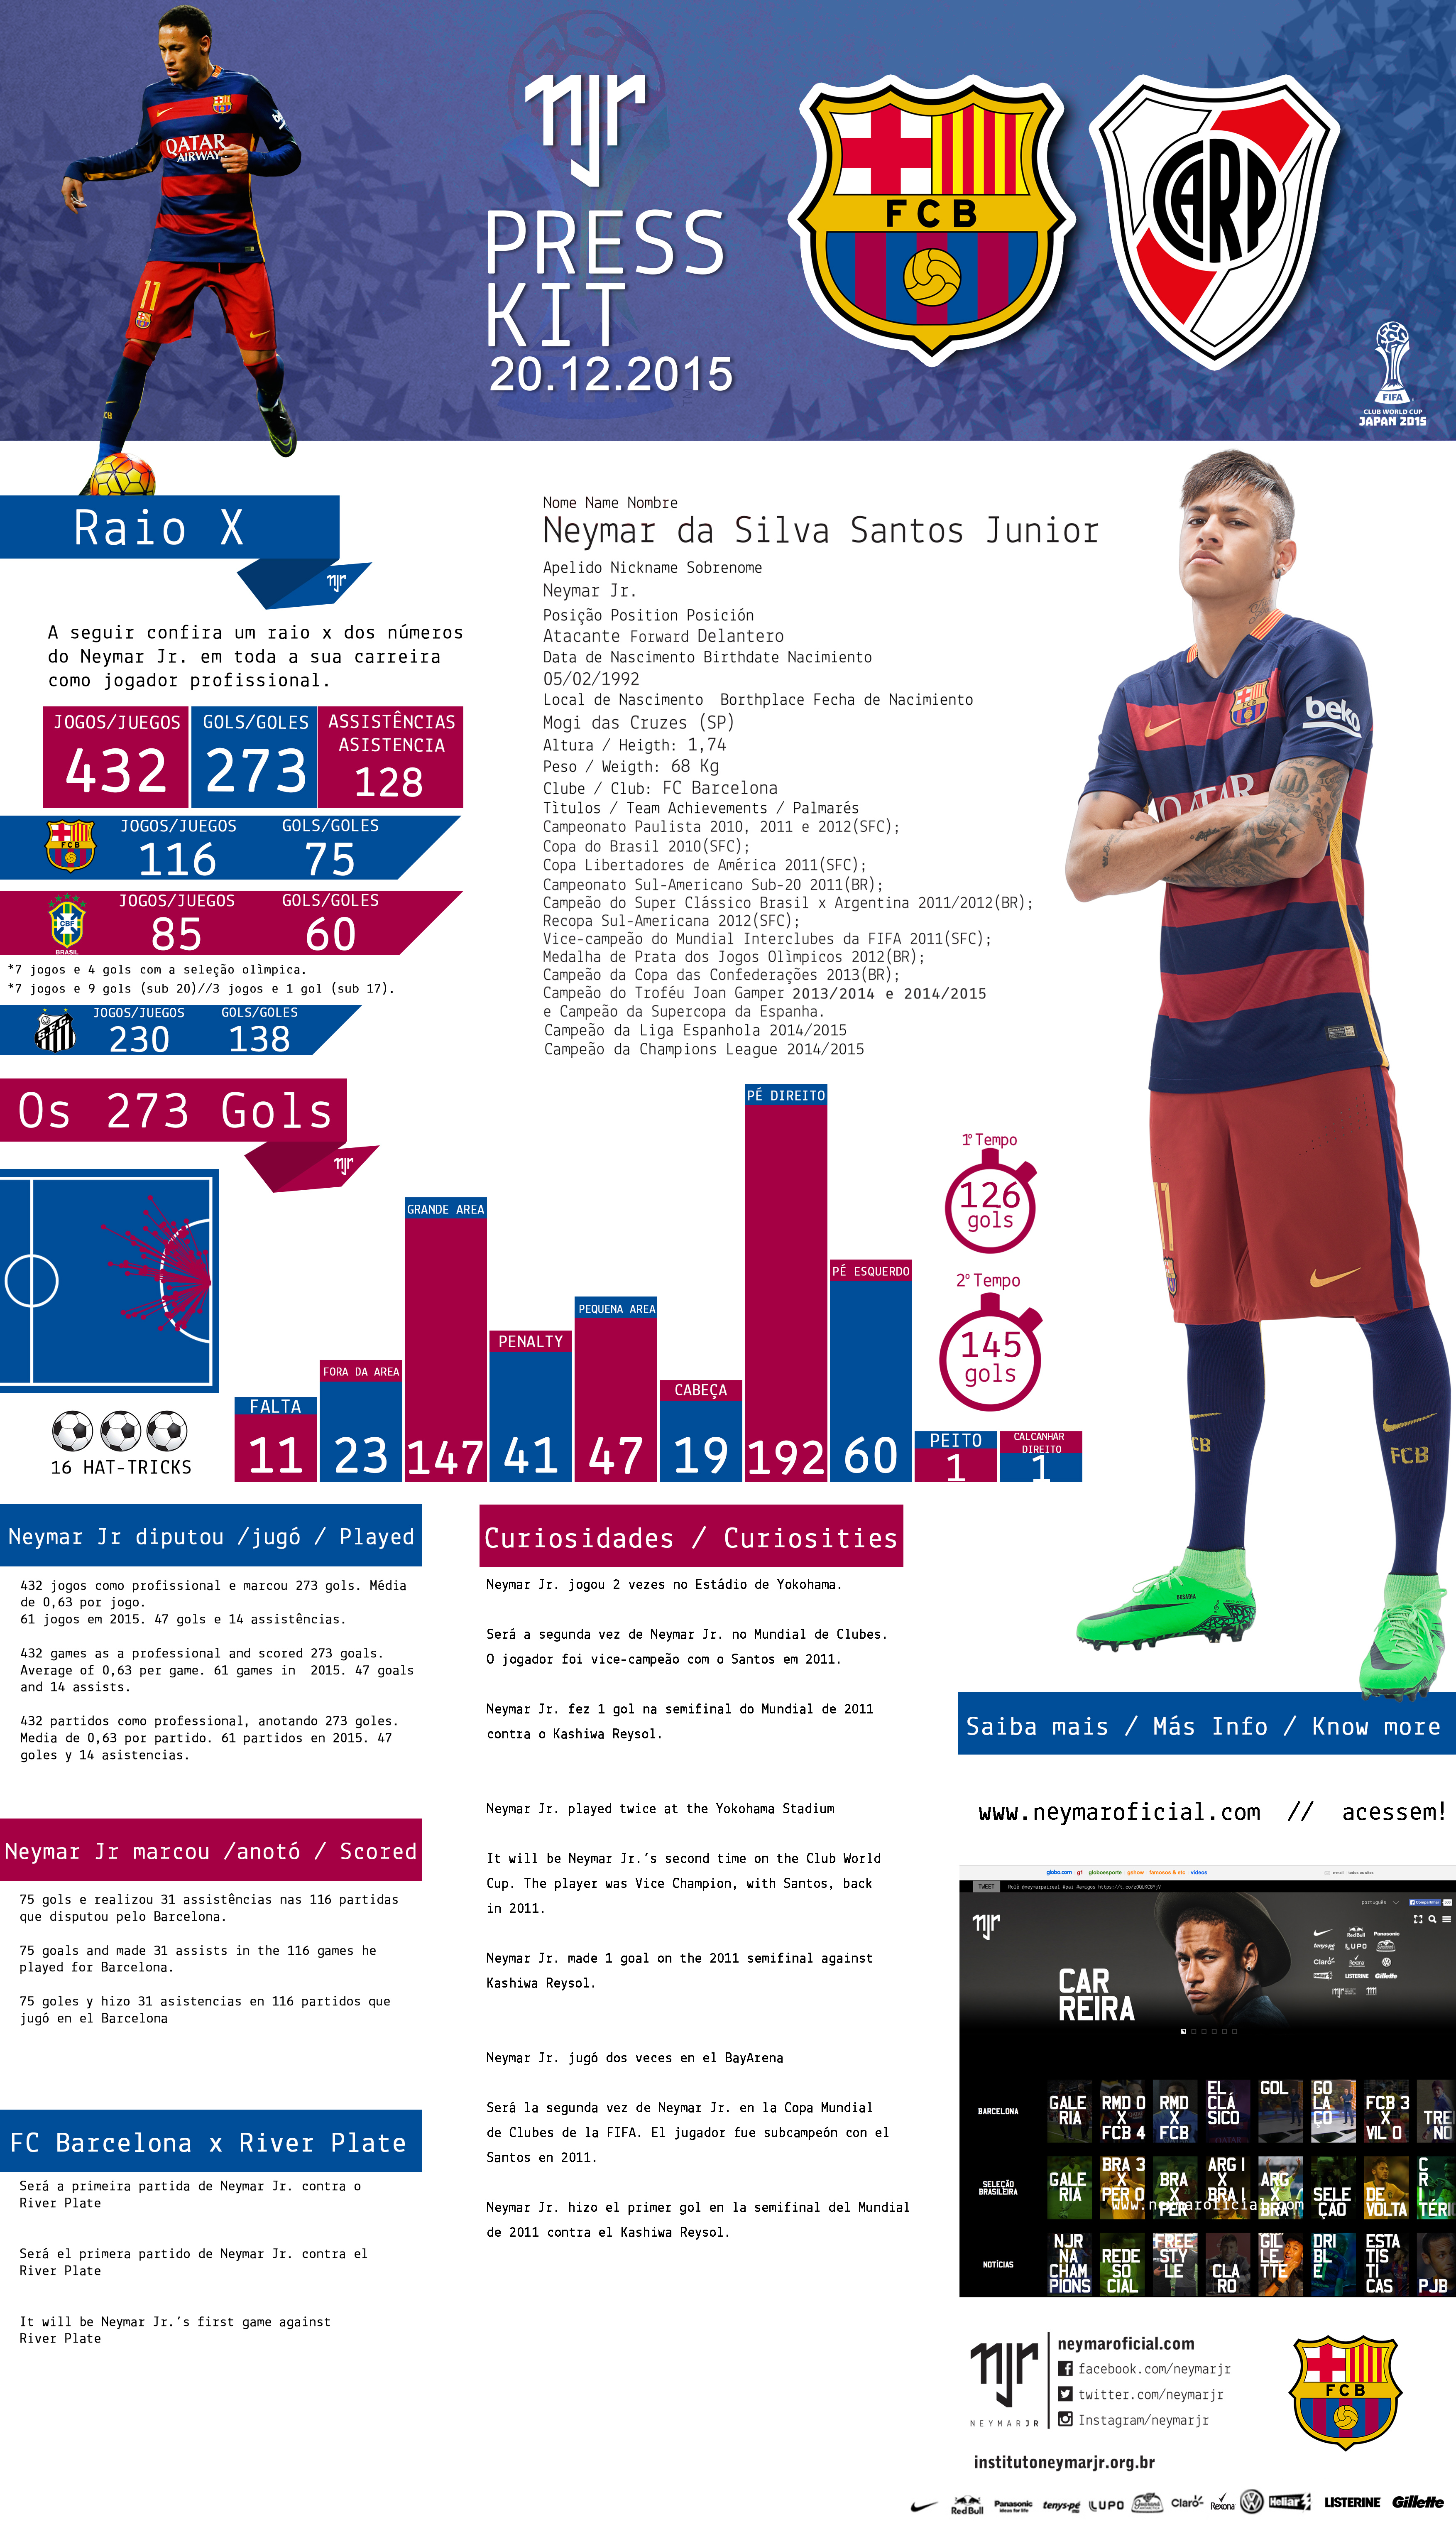 Press Kit - Neymar Jr - FC Barcelona x River Plate - Club World Cup 6a0cc5f57e8f3